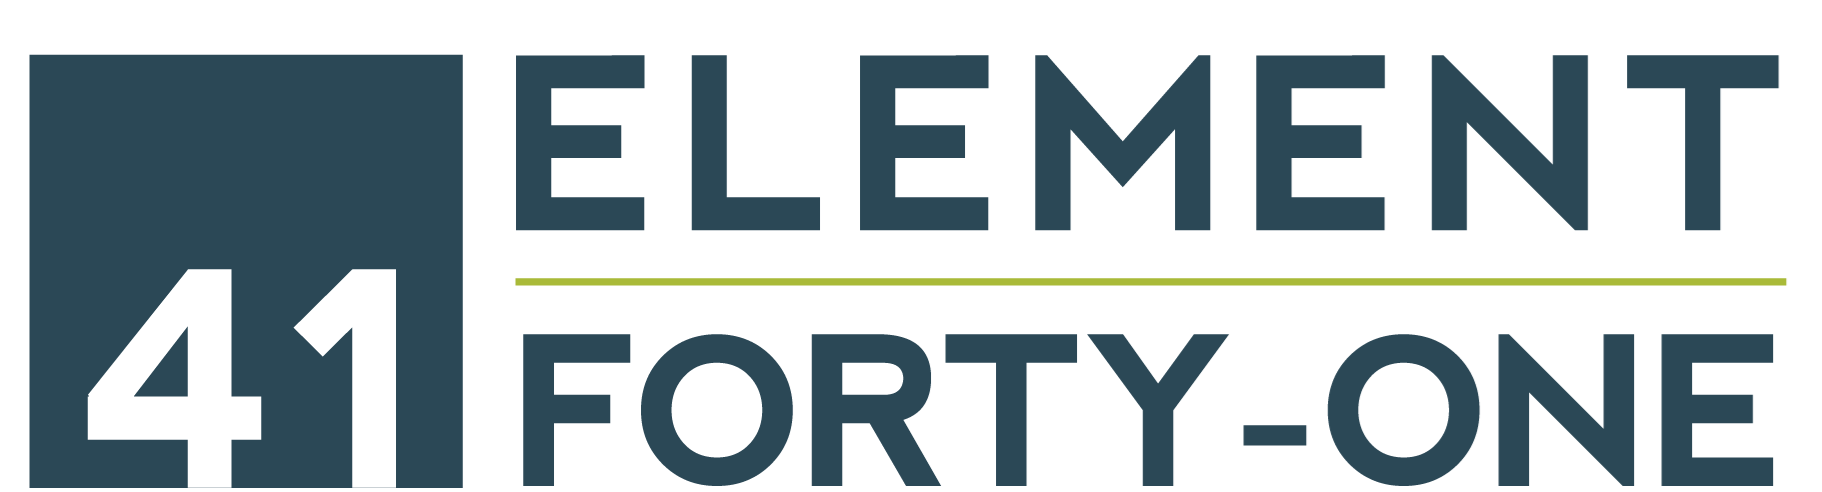 Element 41 Property Logo 52